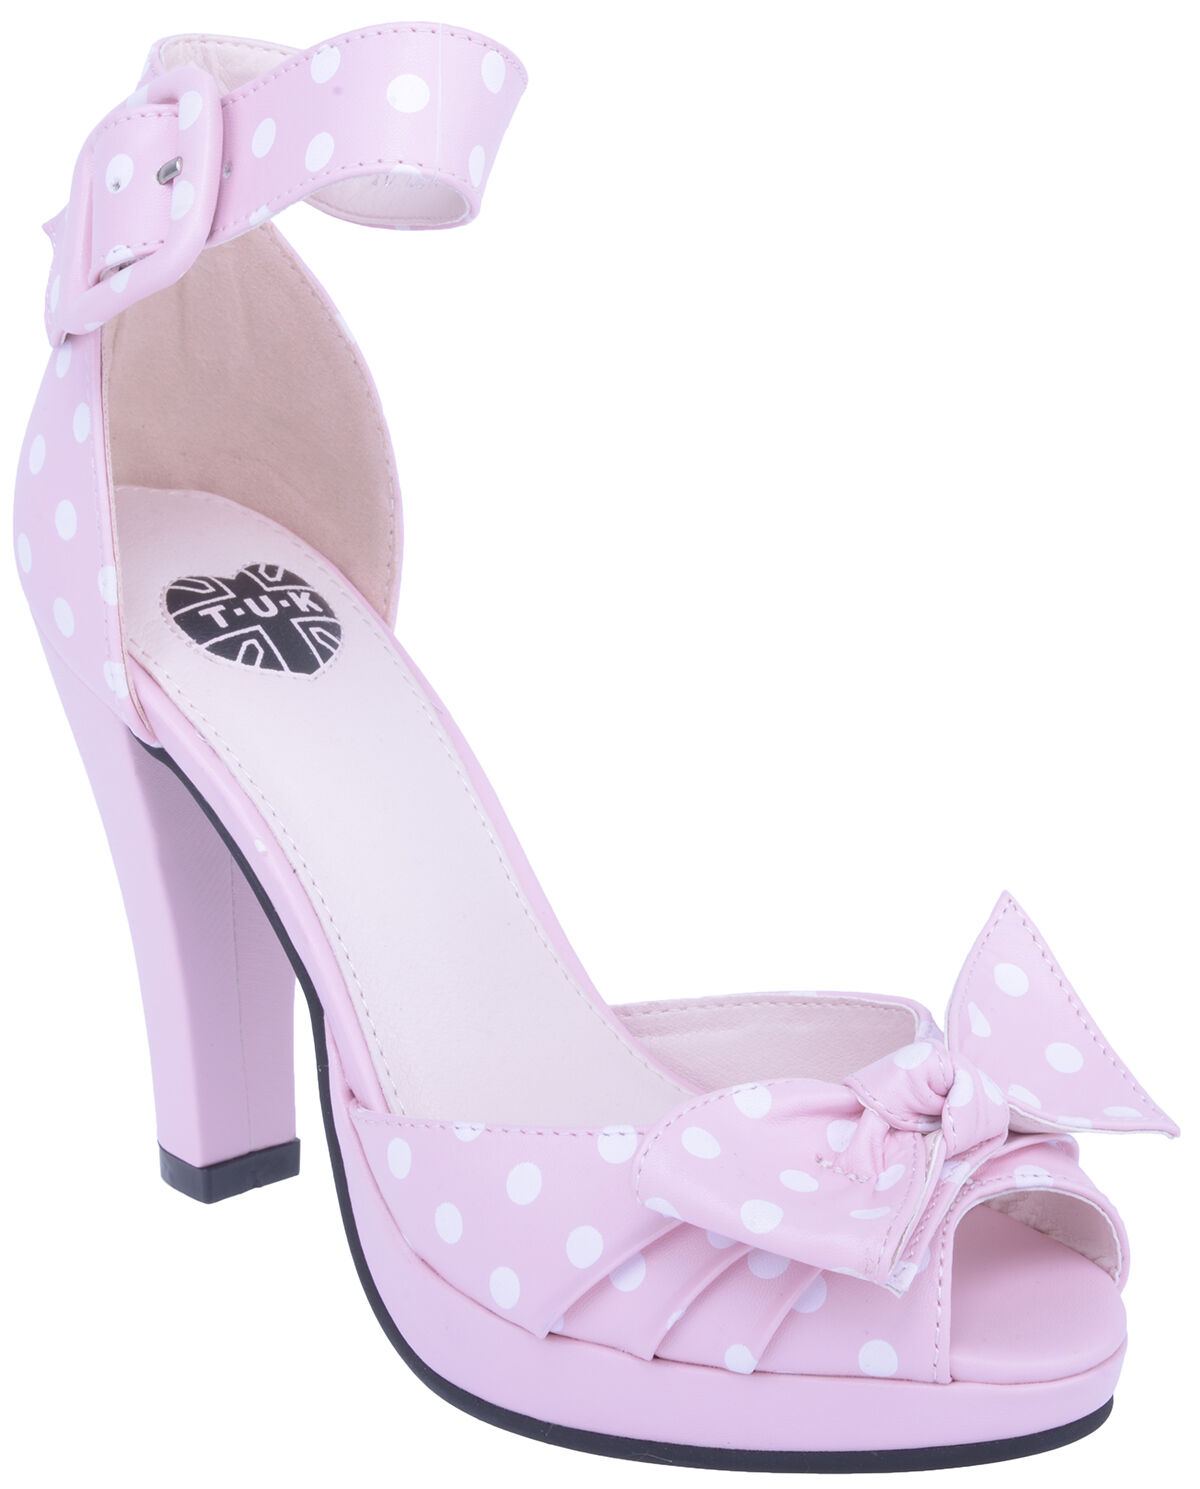 TUK STARLET Polka Dots ANKLE Riemchen BOW Pin Up HIGH Schuhe HEELS Schuhe HIGH Rockabilly 93b963